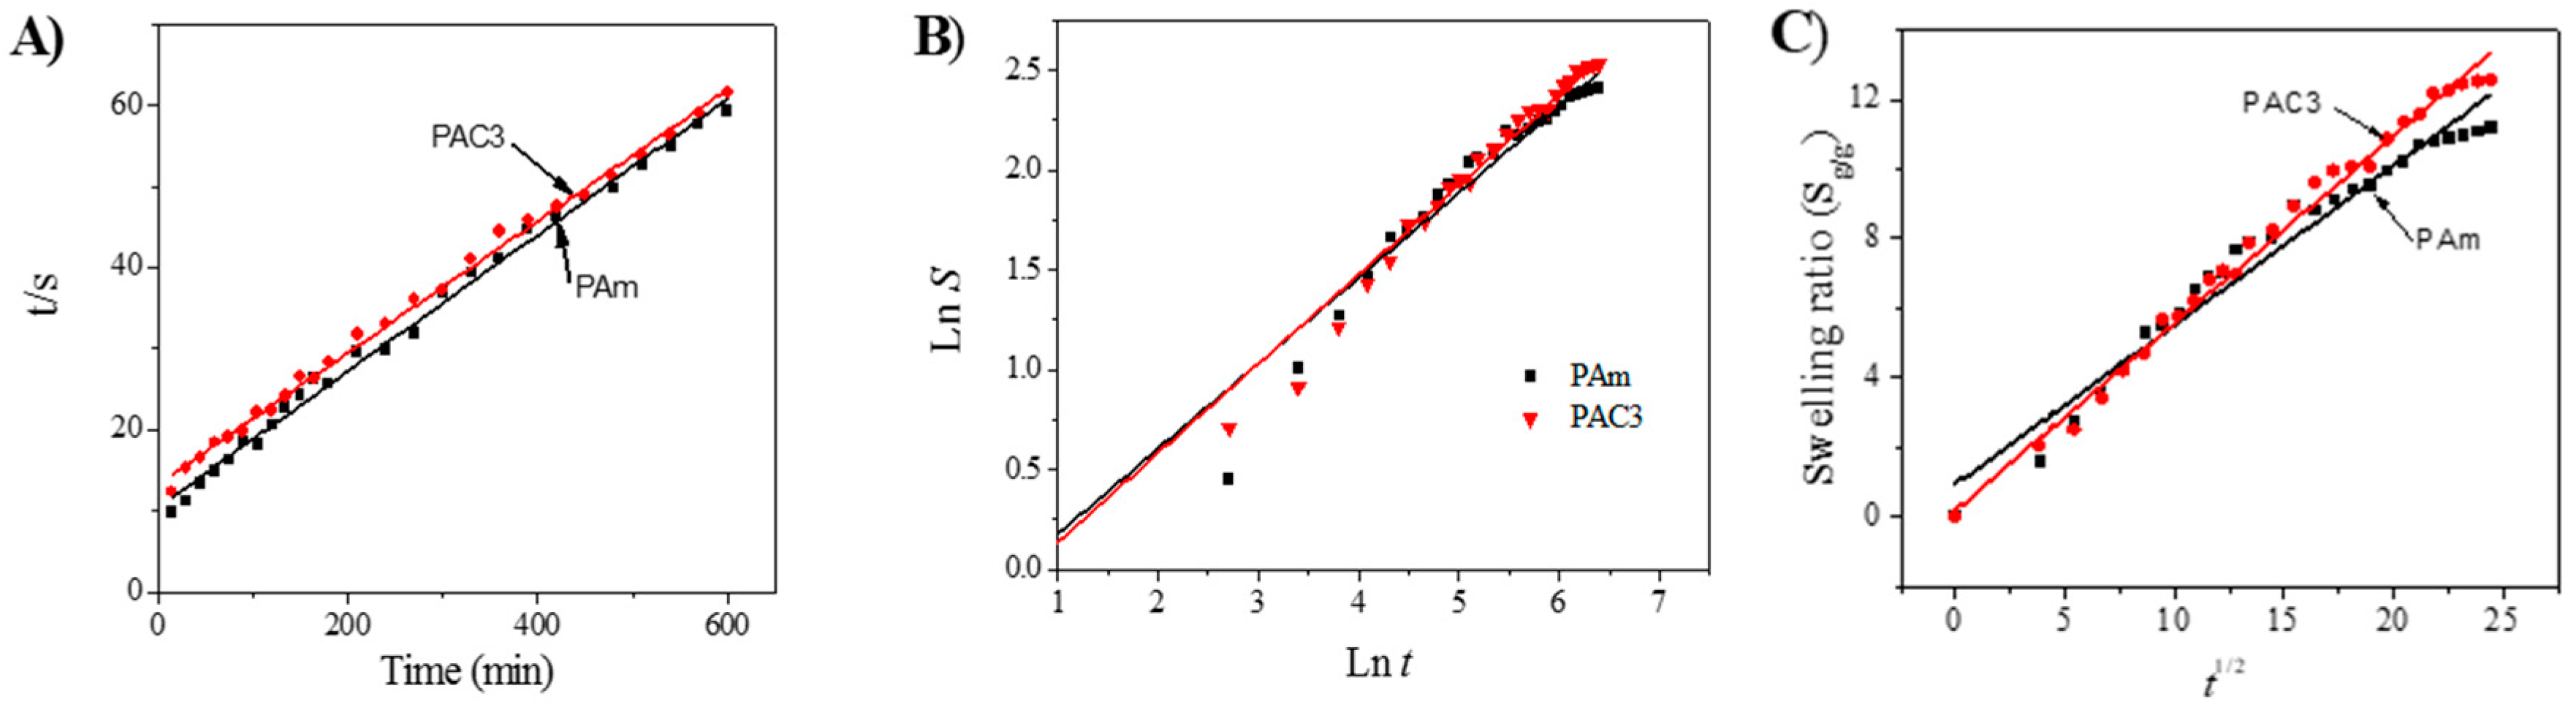 Materials | Free Full-Text | Swelling Behavior of Polyacrylamide